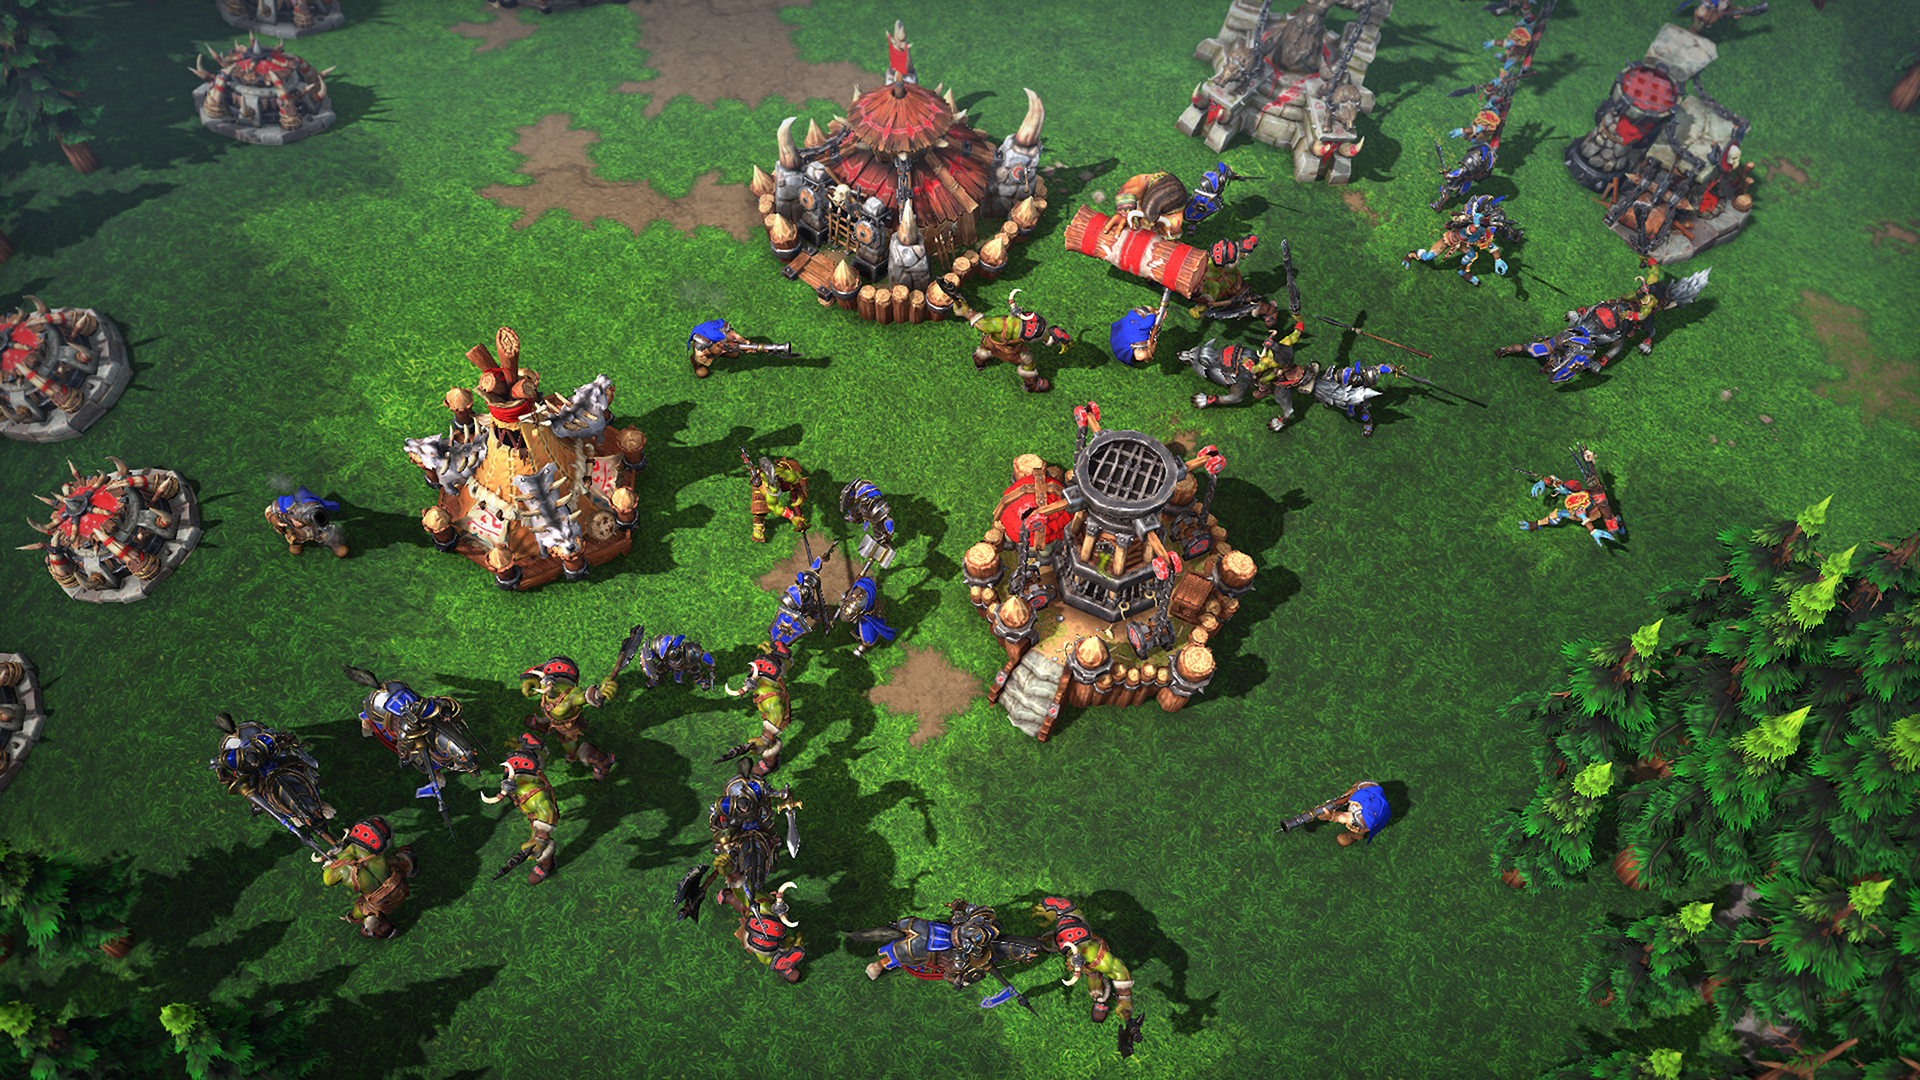 Warcraft 3: Reforged is an HD remaster of the classic RTS